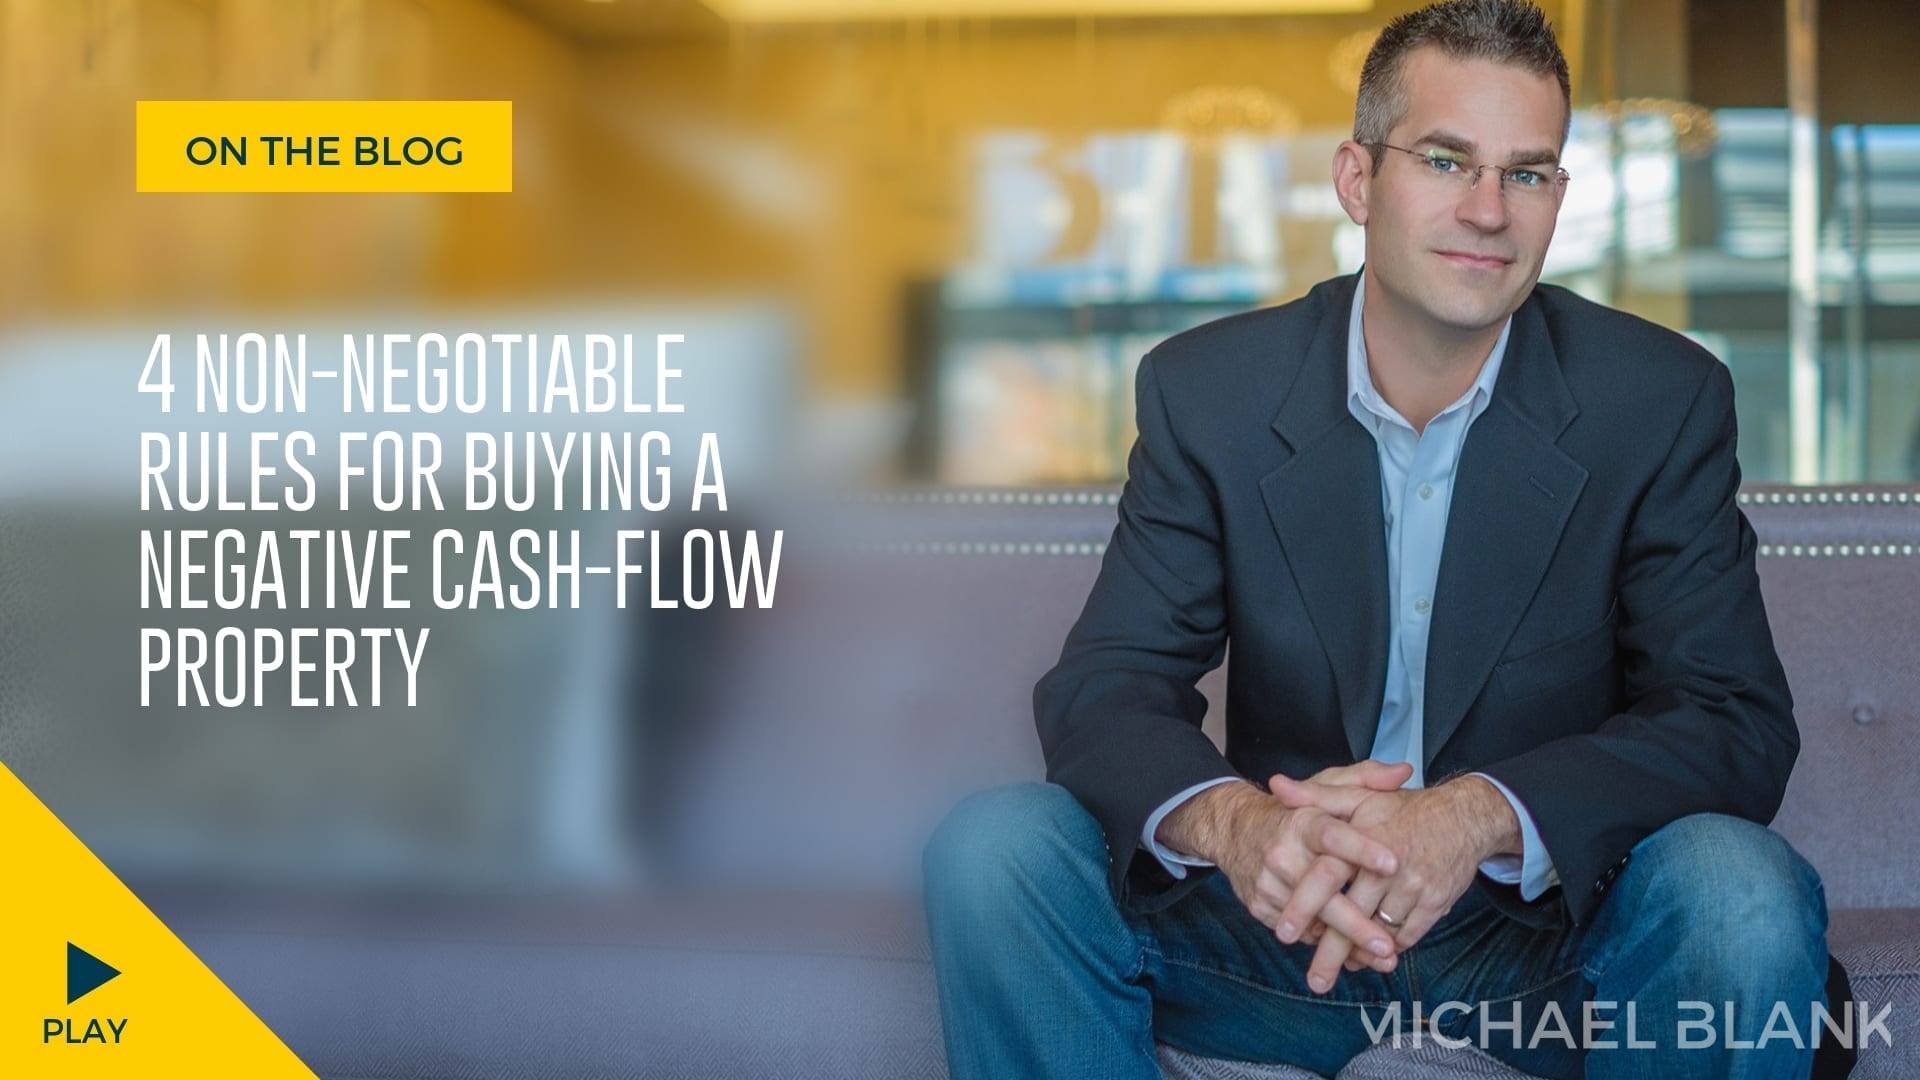 4 Non-Negotiable Rules For Buying a Negative Cash-Flow Property